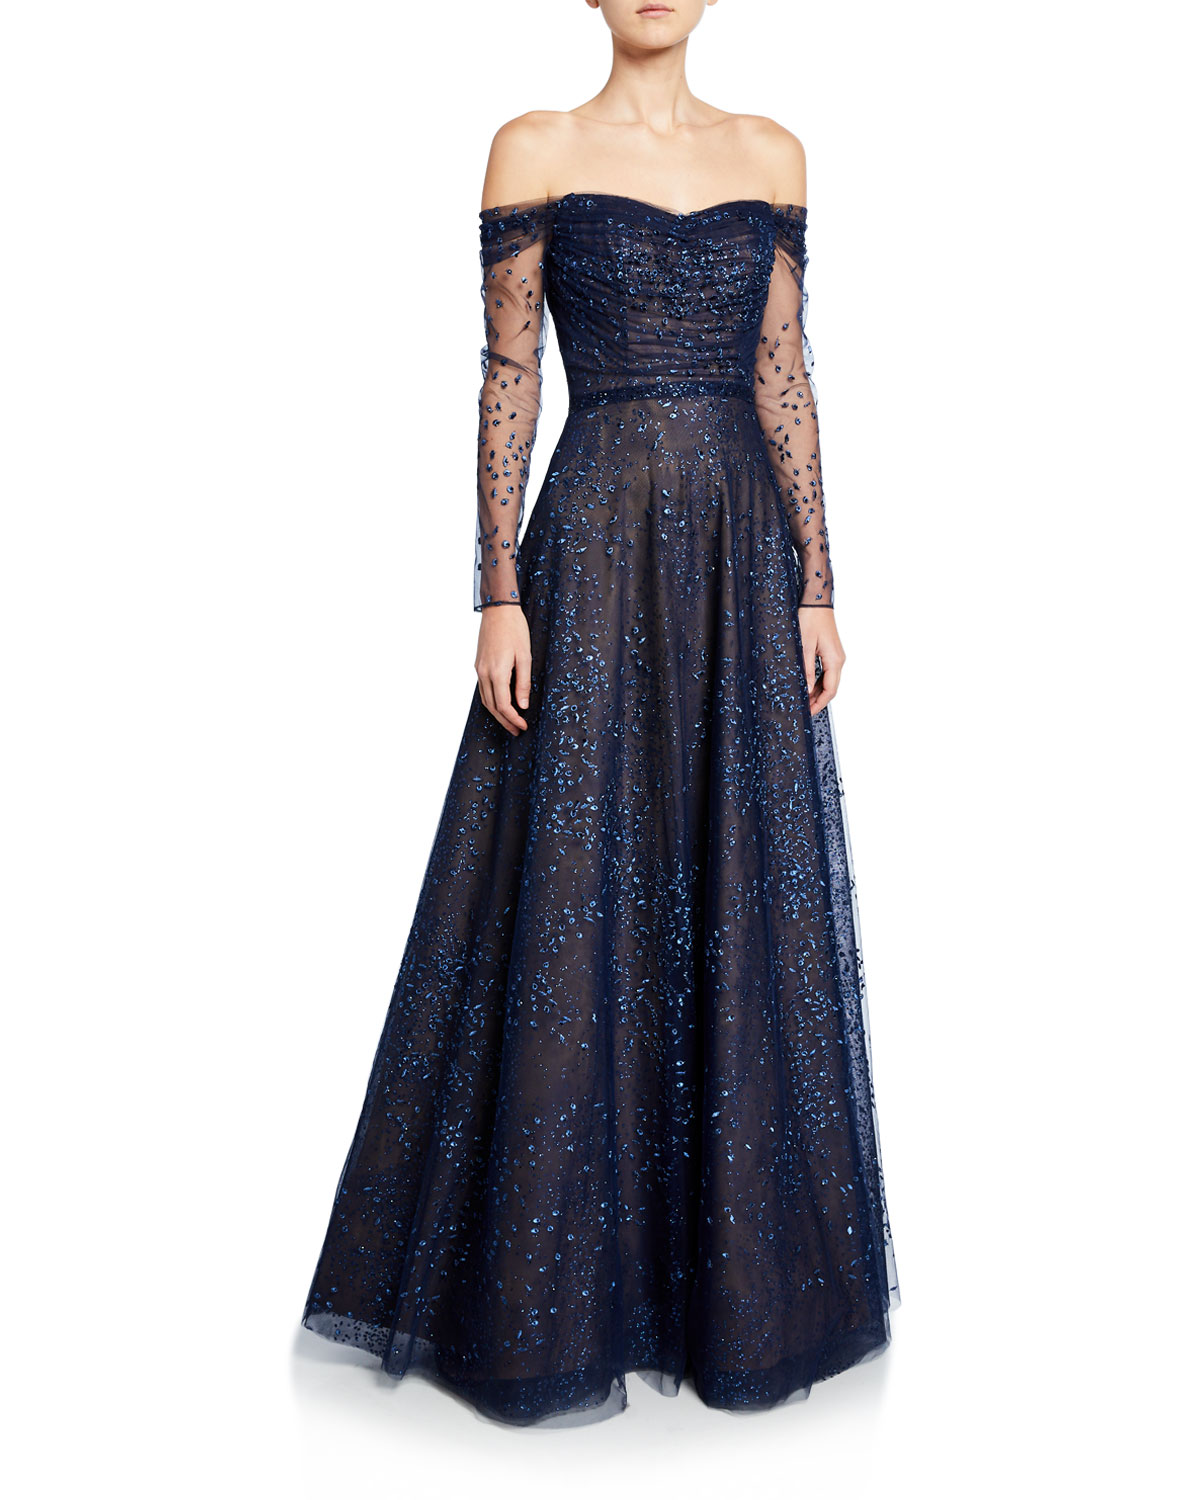 7382a20a6d8 Ombre Embellished Off-the-Shoulder Long-Sleeve Shirred Gown